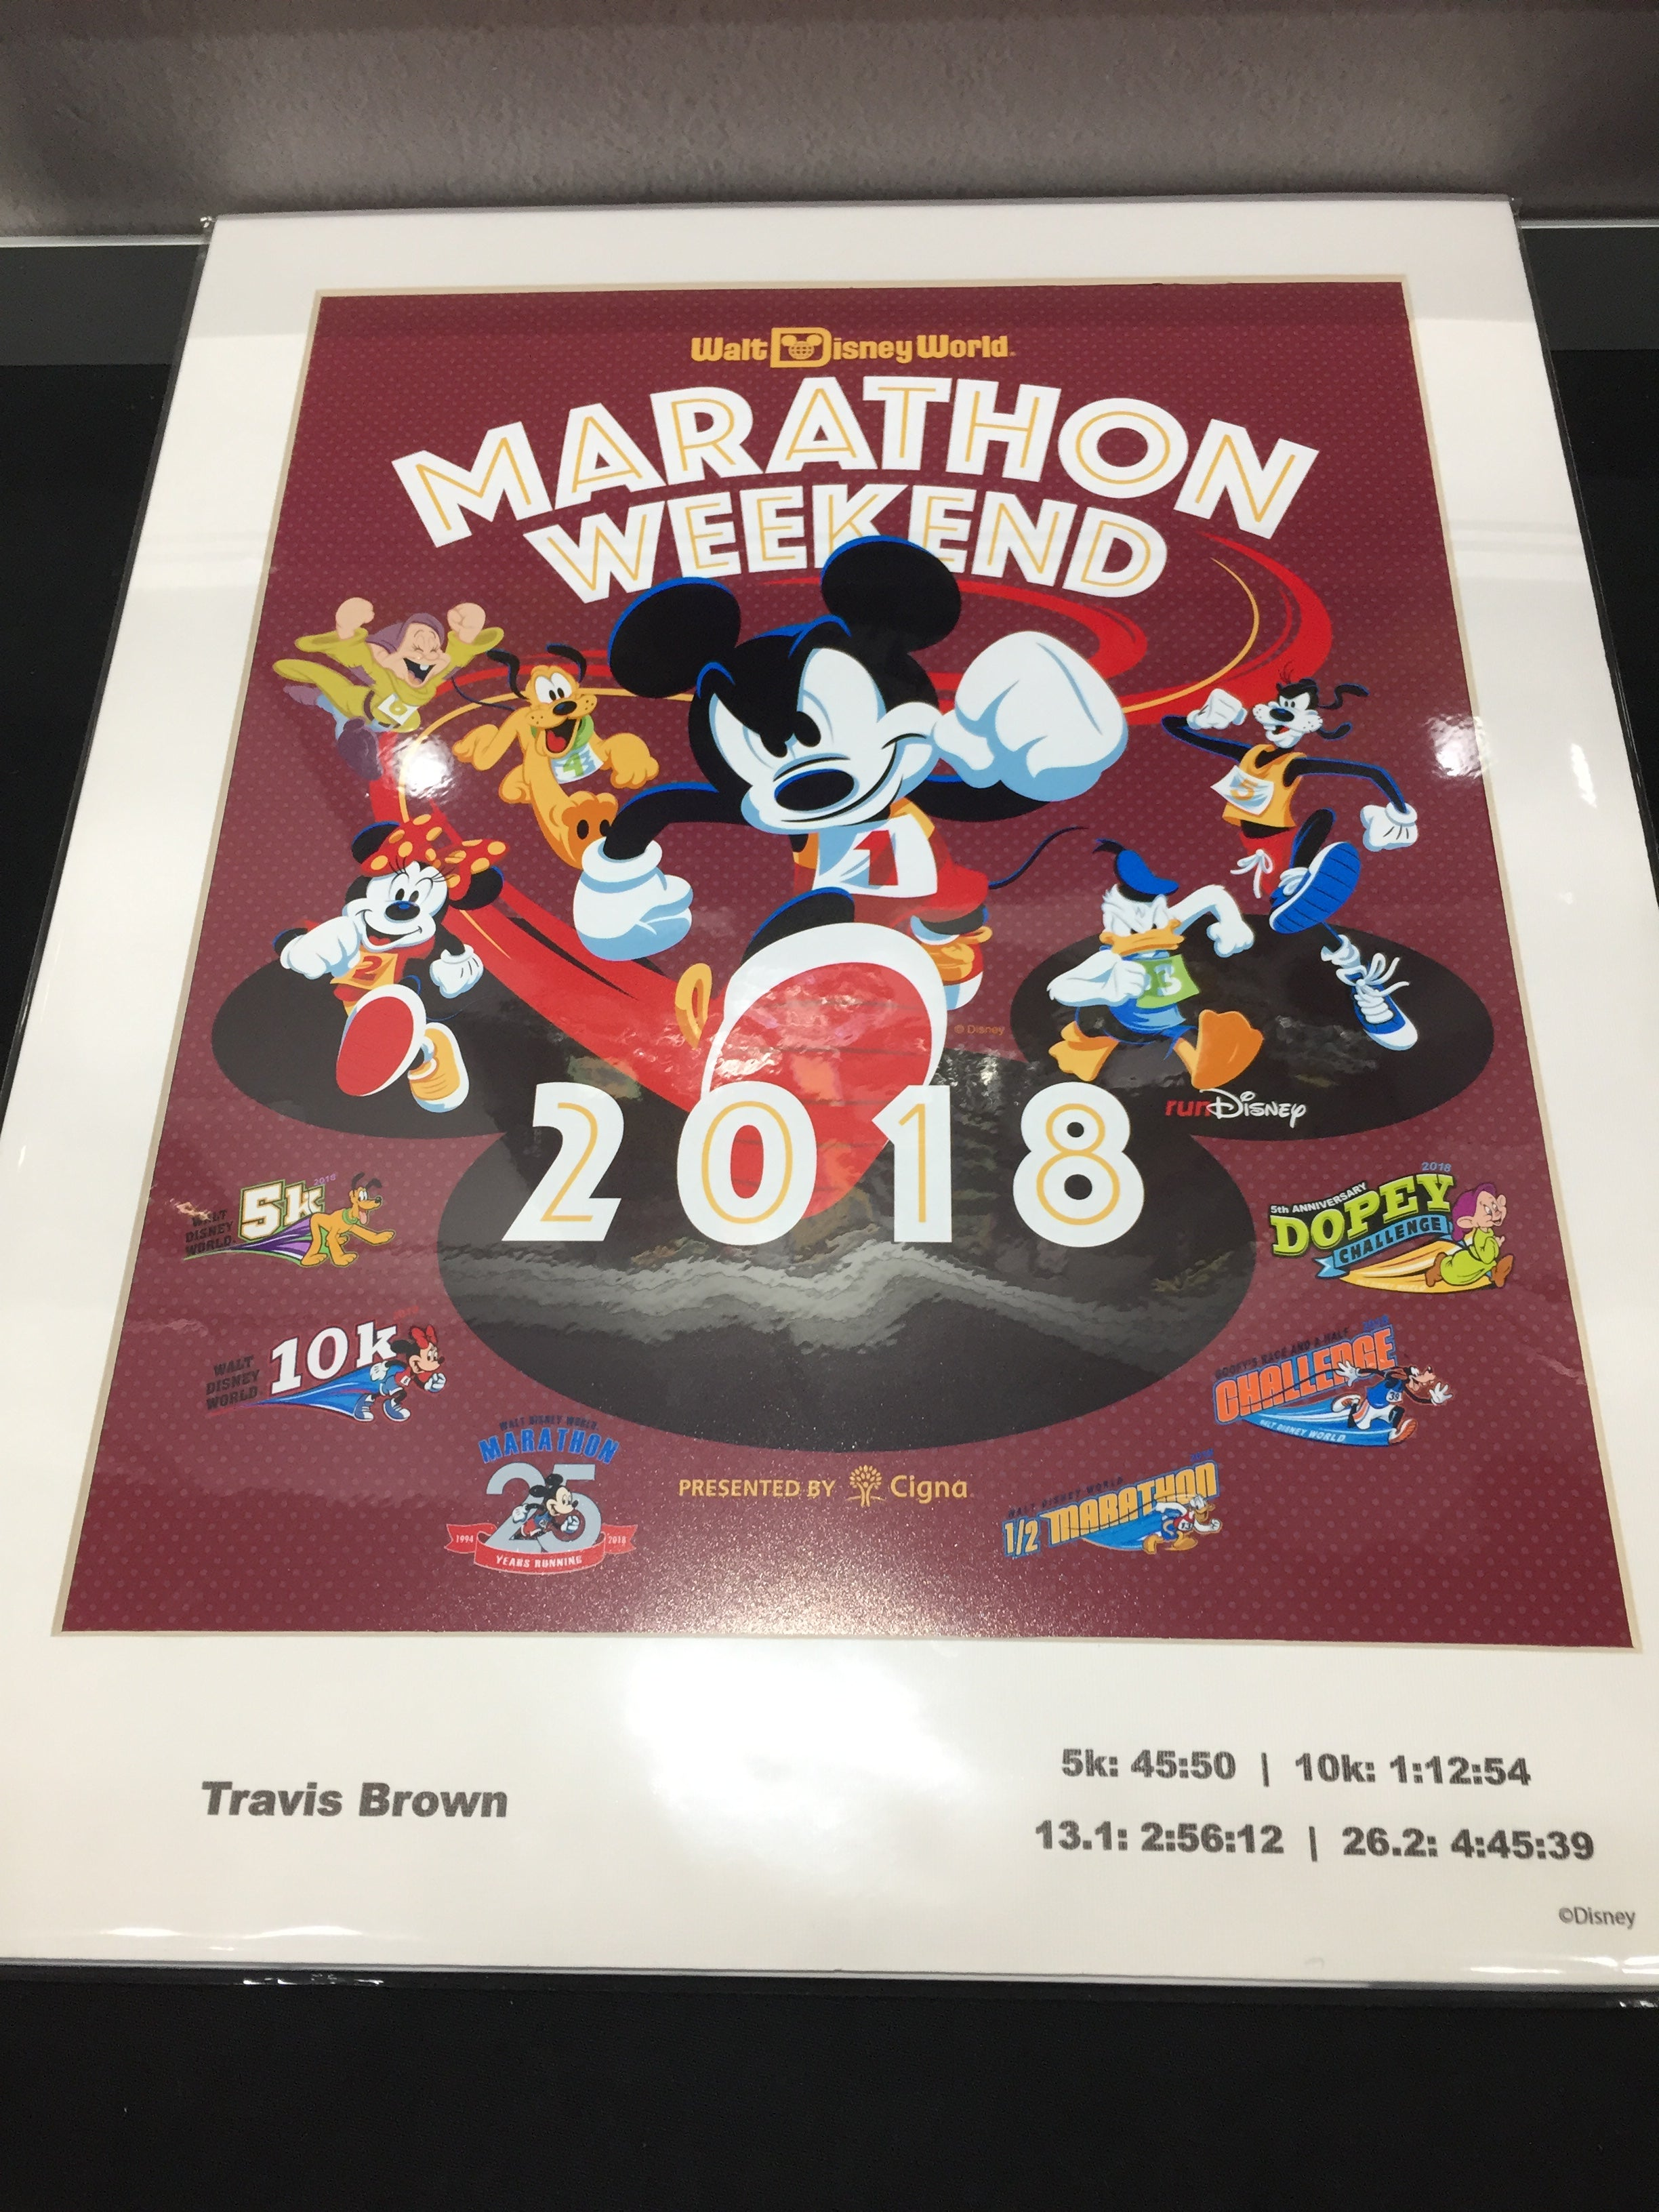 2018 Walt Disney World Marathon Weekend Print With Personalization